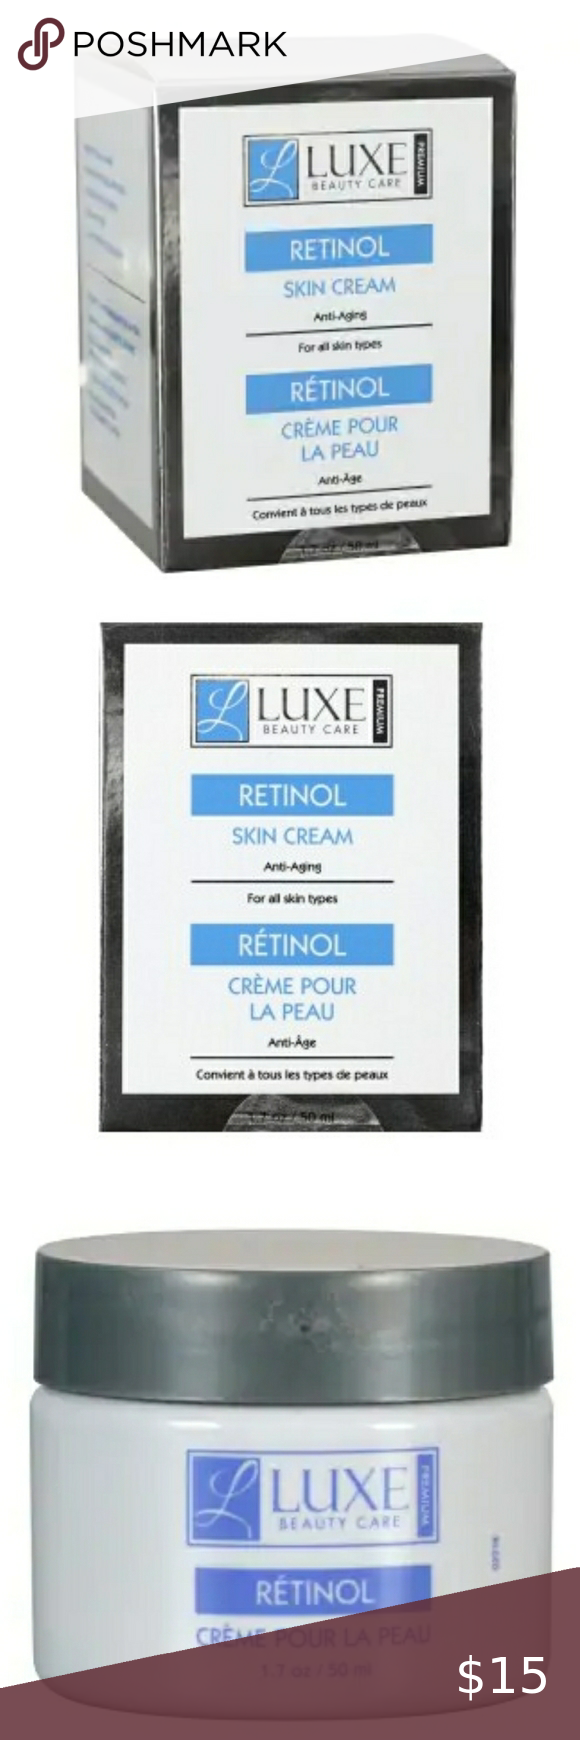 Luxe Beauty Care Retinol Skin Cream Premium Anti Aging Skin Cream Is Hydrating And And Gentle On Your Skin Plus In 2020 Skin Cream Skin Cream Anti Aging Beauty Care